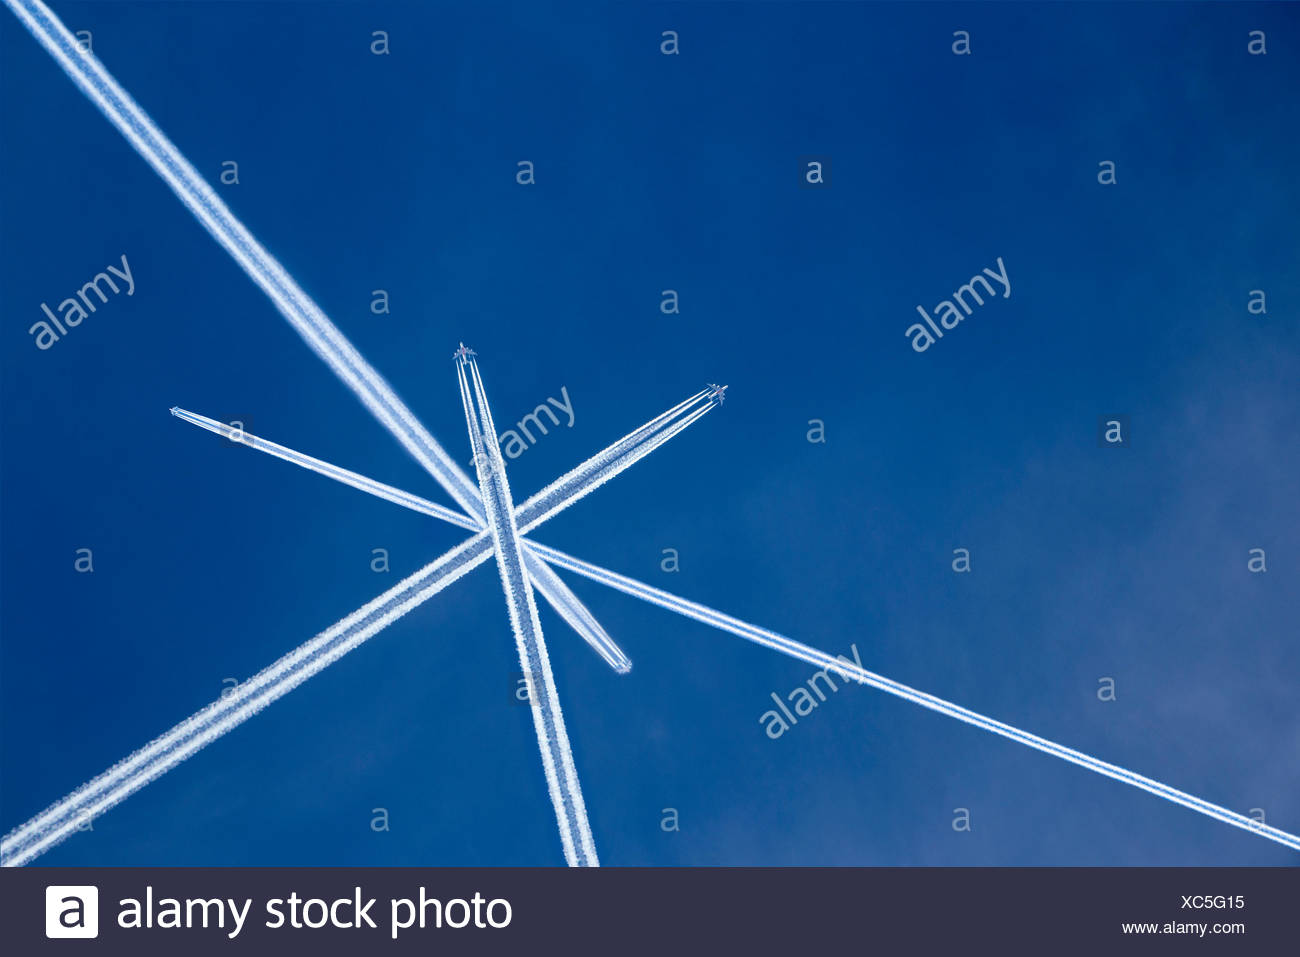 Crossed vapor trails of airplanes in blue sky - Stock Image